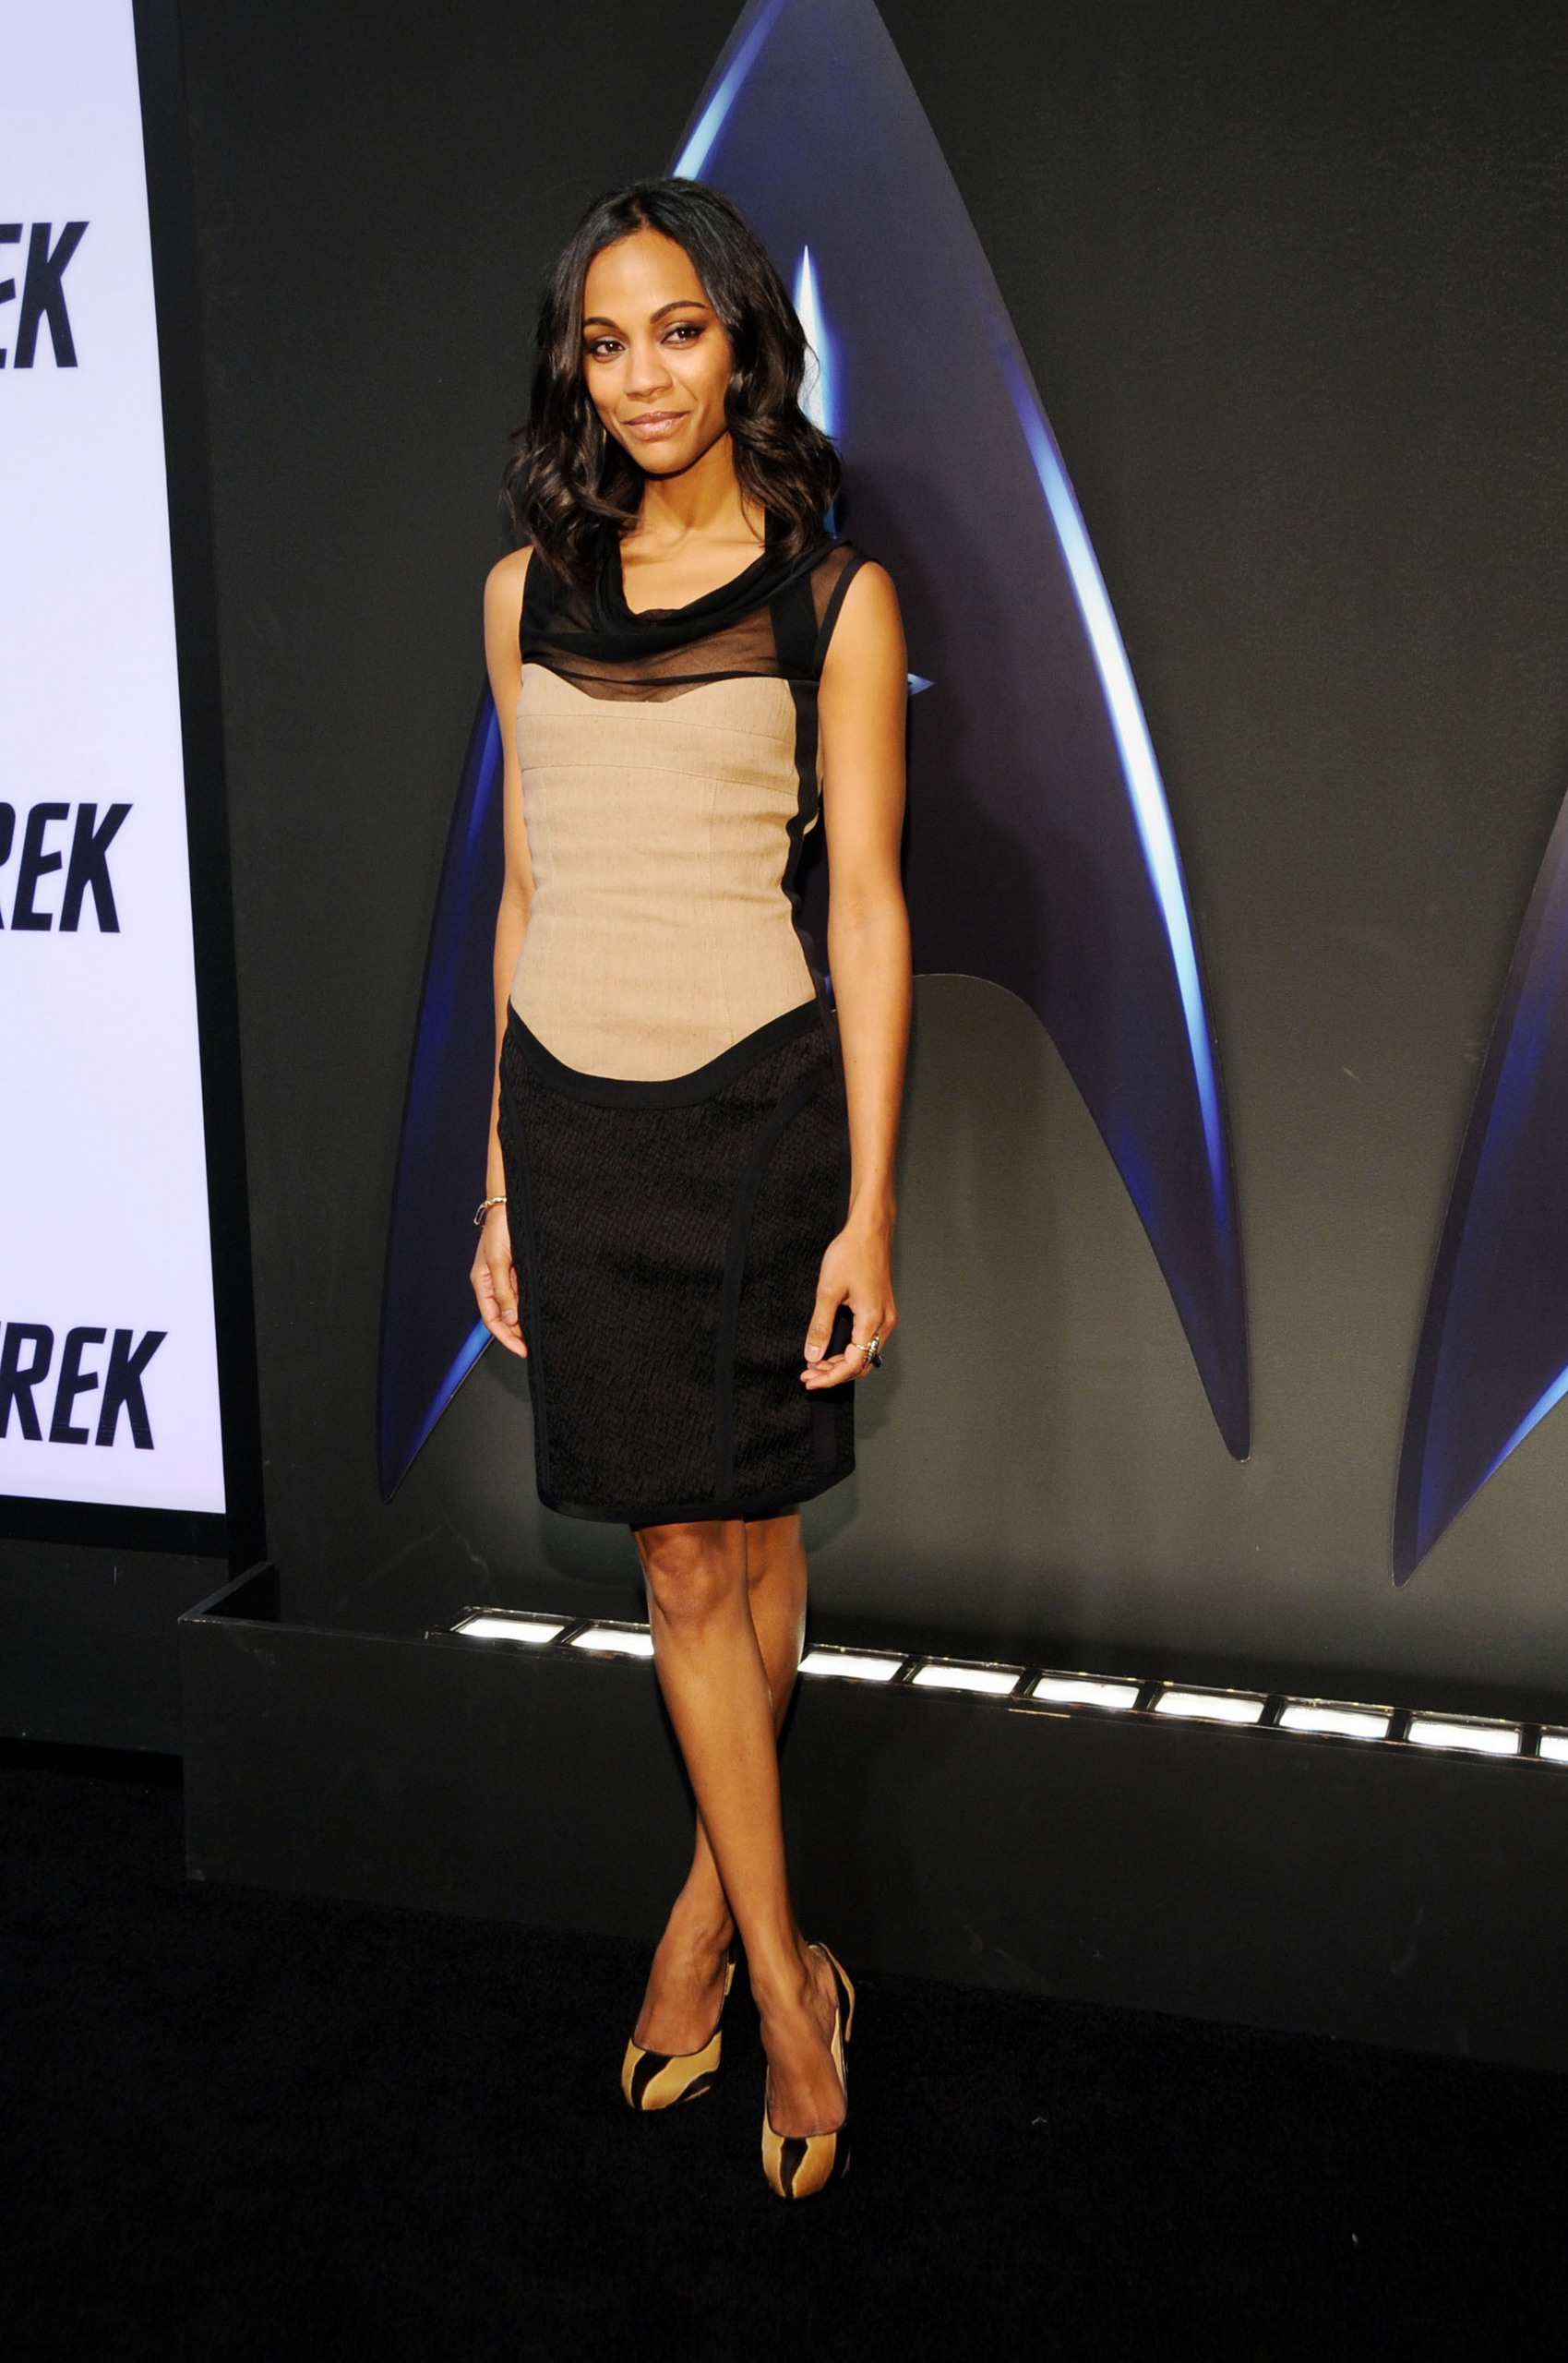 Zoe-Saldana-Star-Trek-DVD-Release-Party-HQ-zoe-saldana-9260971-1699    Zoe Saldana Star Trek